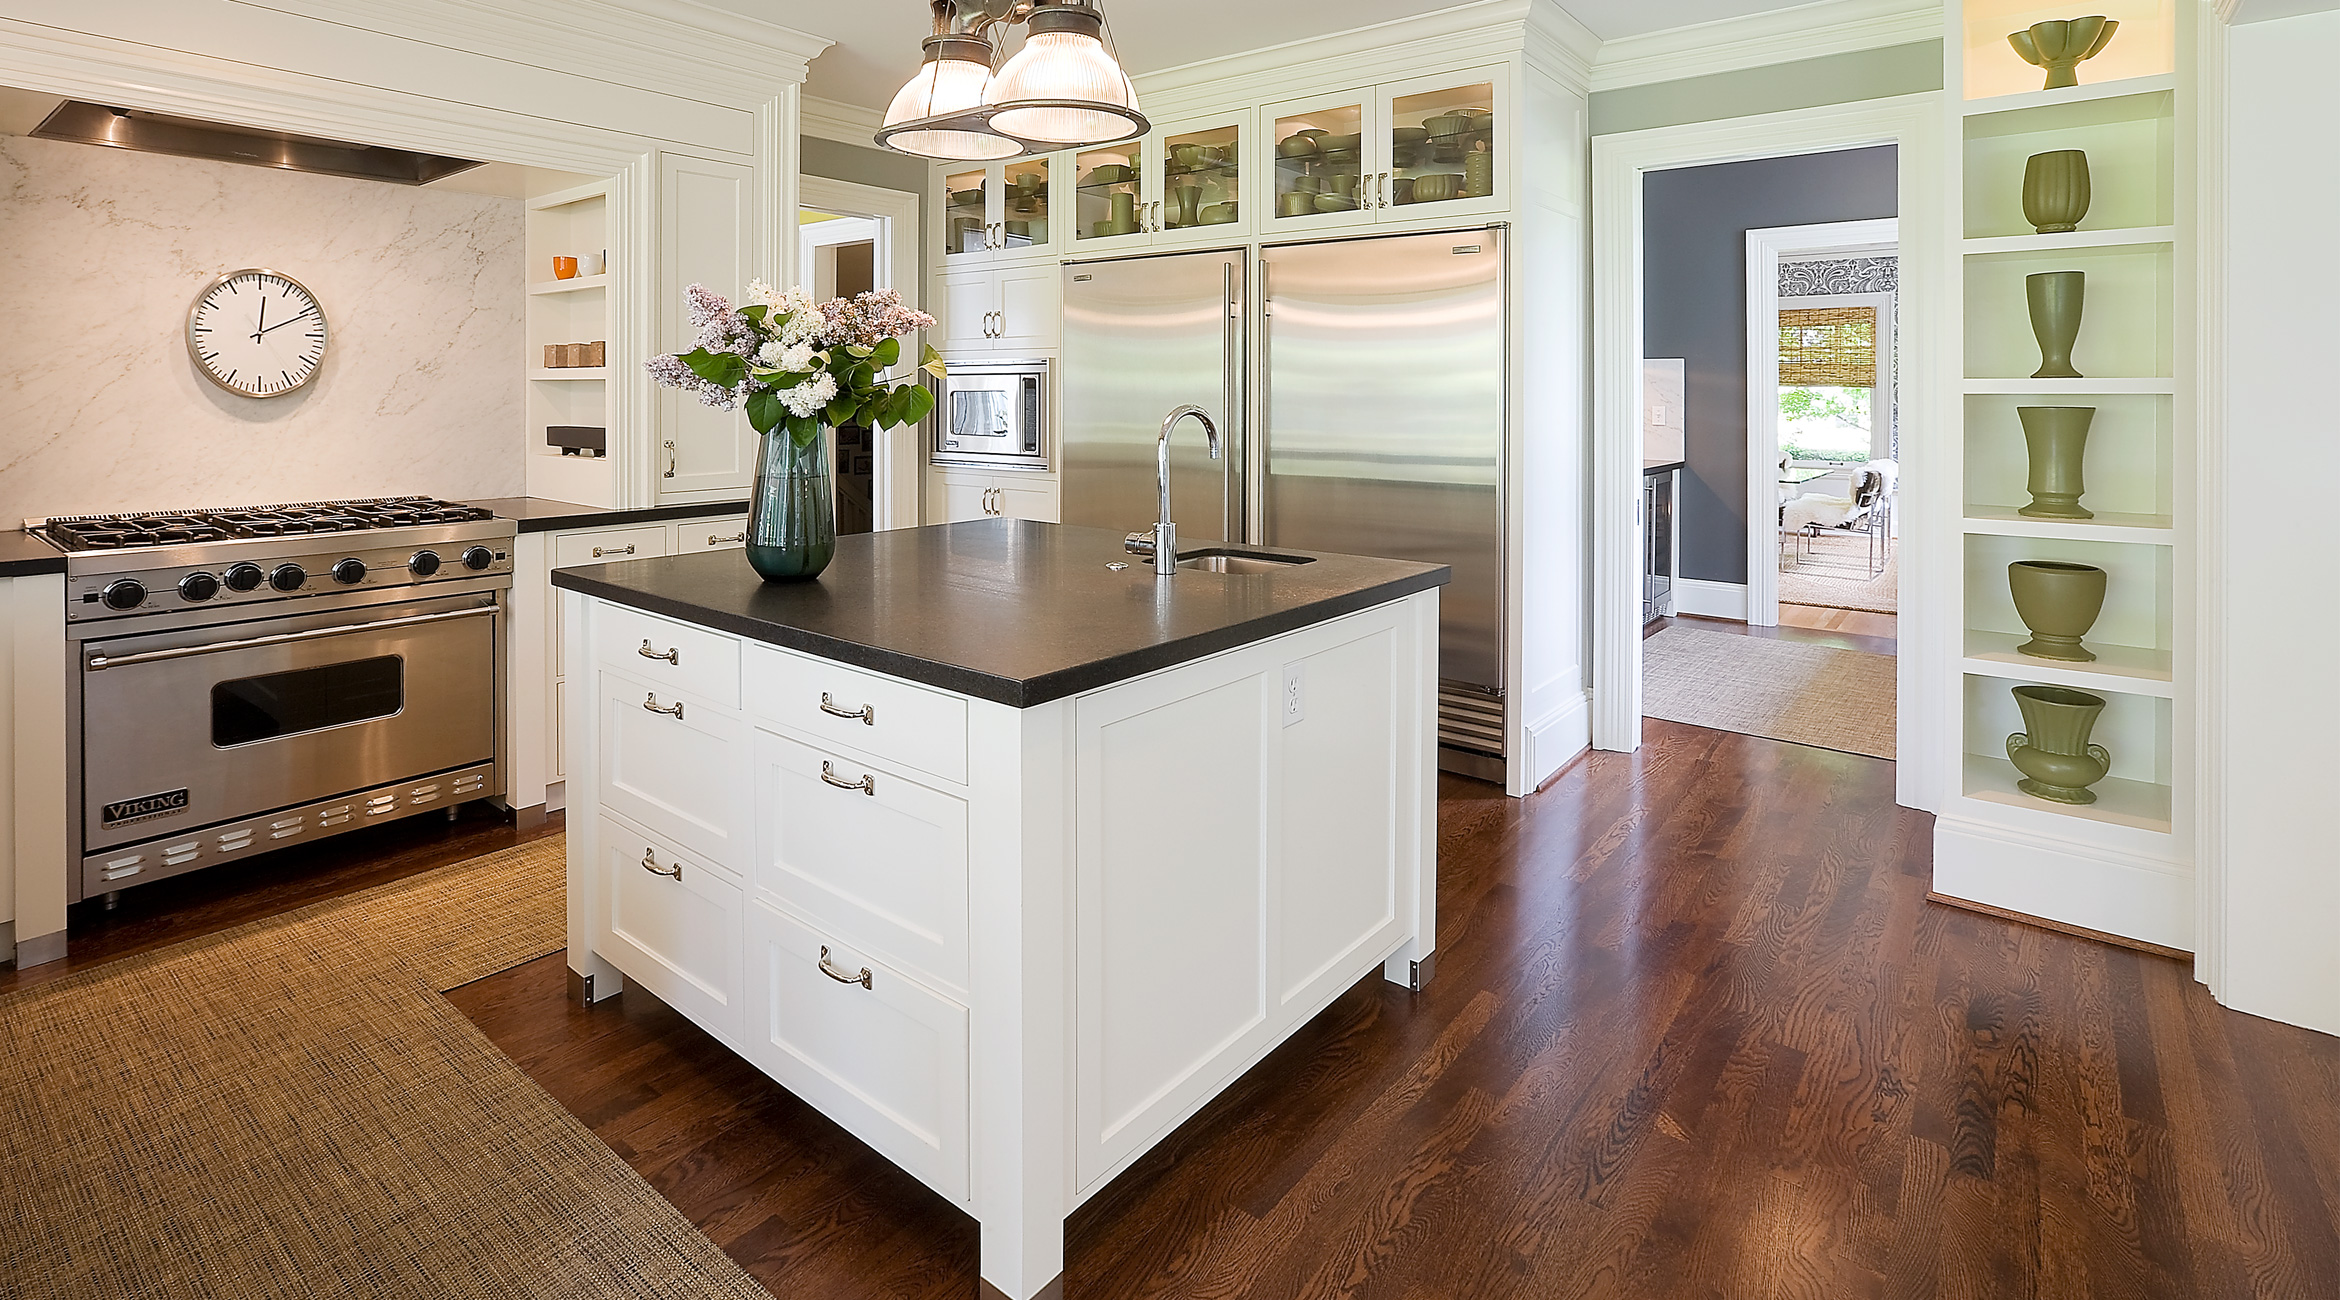 The Kitchen Island Ideas Seating Small Kitchen Cart Your Next Kitchen Remodel Small Kitchen Island Drawers Drawers kitchen Small Kitchen Islands With Drawers